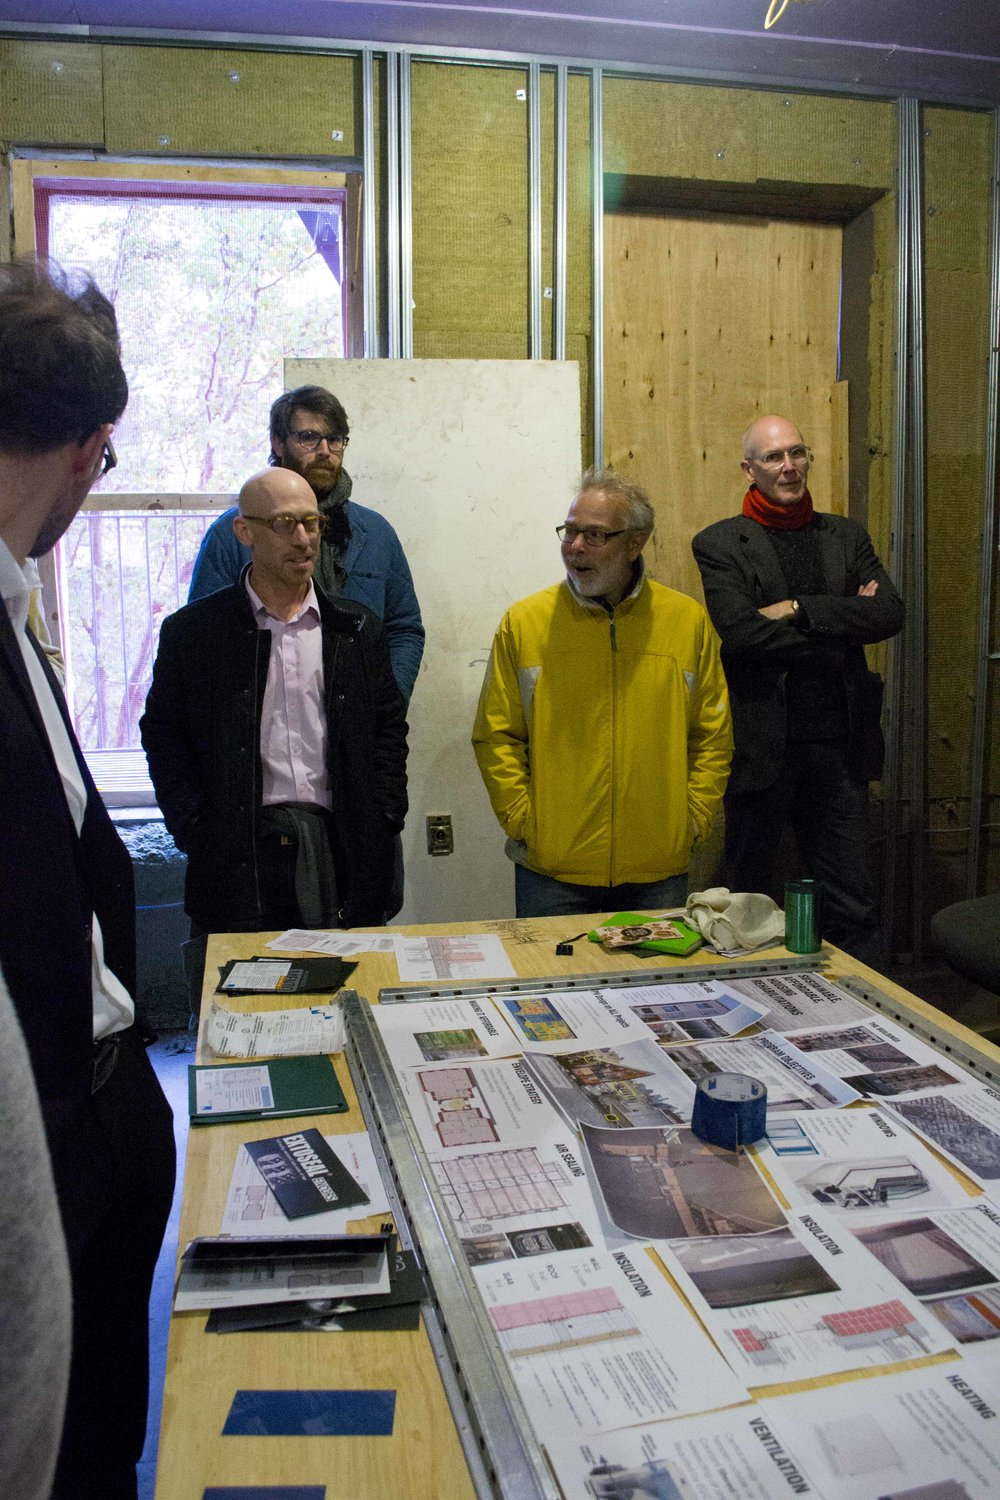 20161111__NY PASSIVE HOUSE DAYS_OPEN HOUSE_PAUL CASTRUCCI ARCHITECT__0086_lowres.jpg